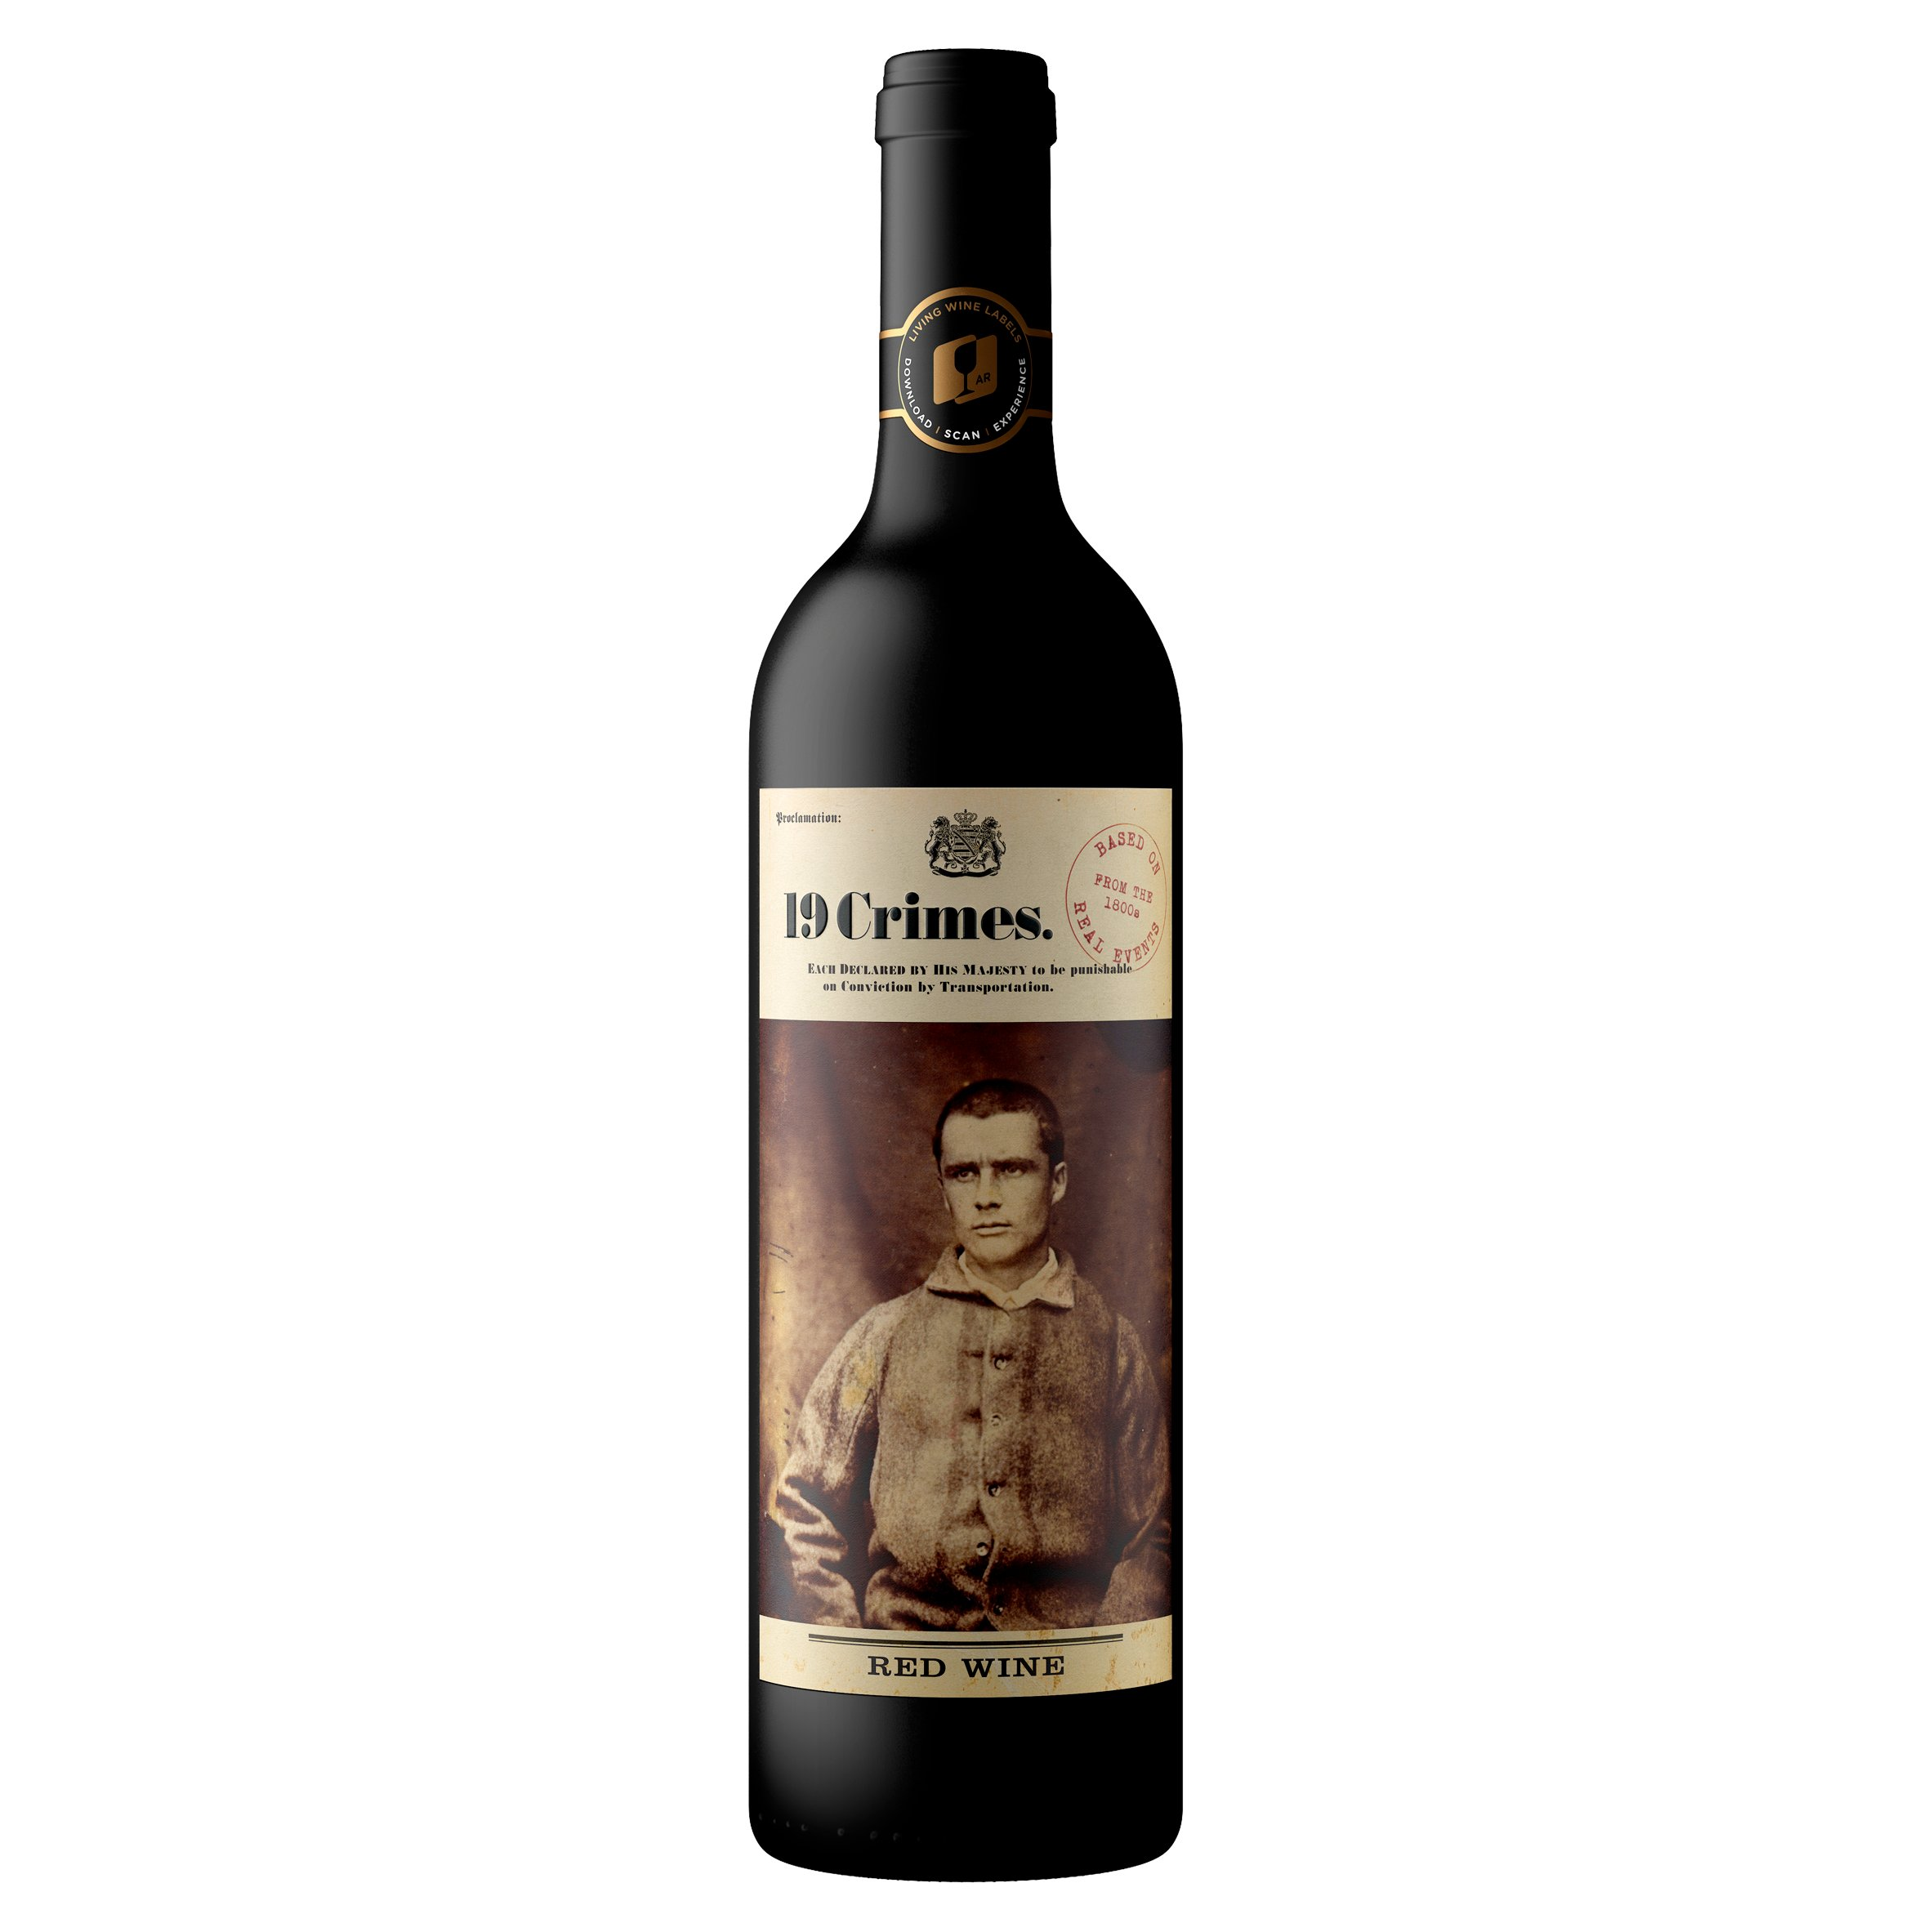 19 Crimes Red Wine 75cl Tesco Groceries